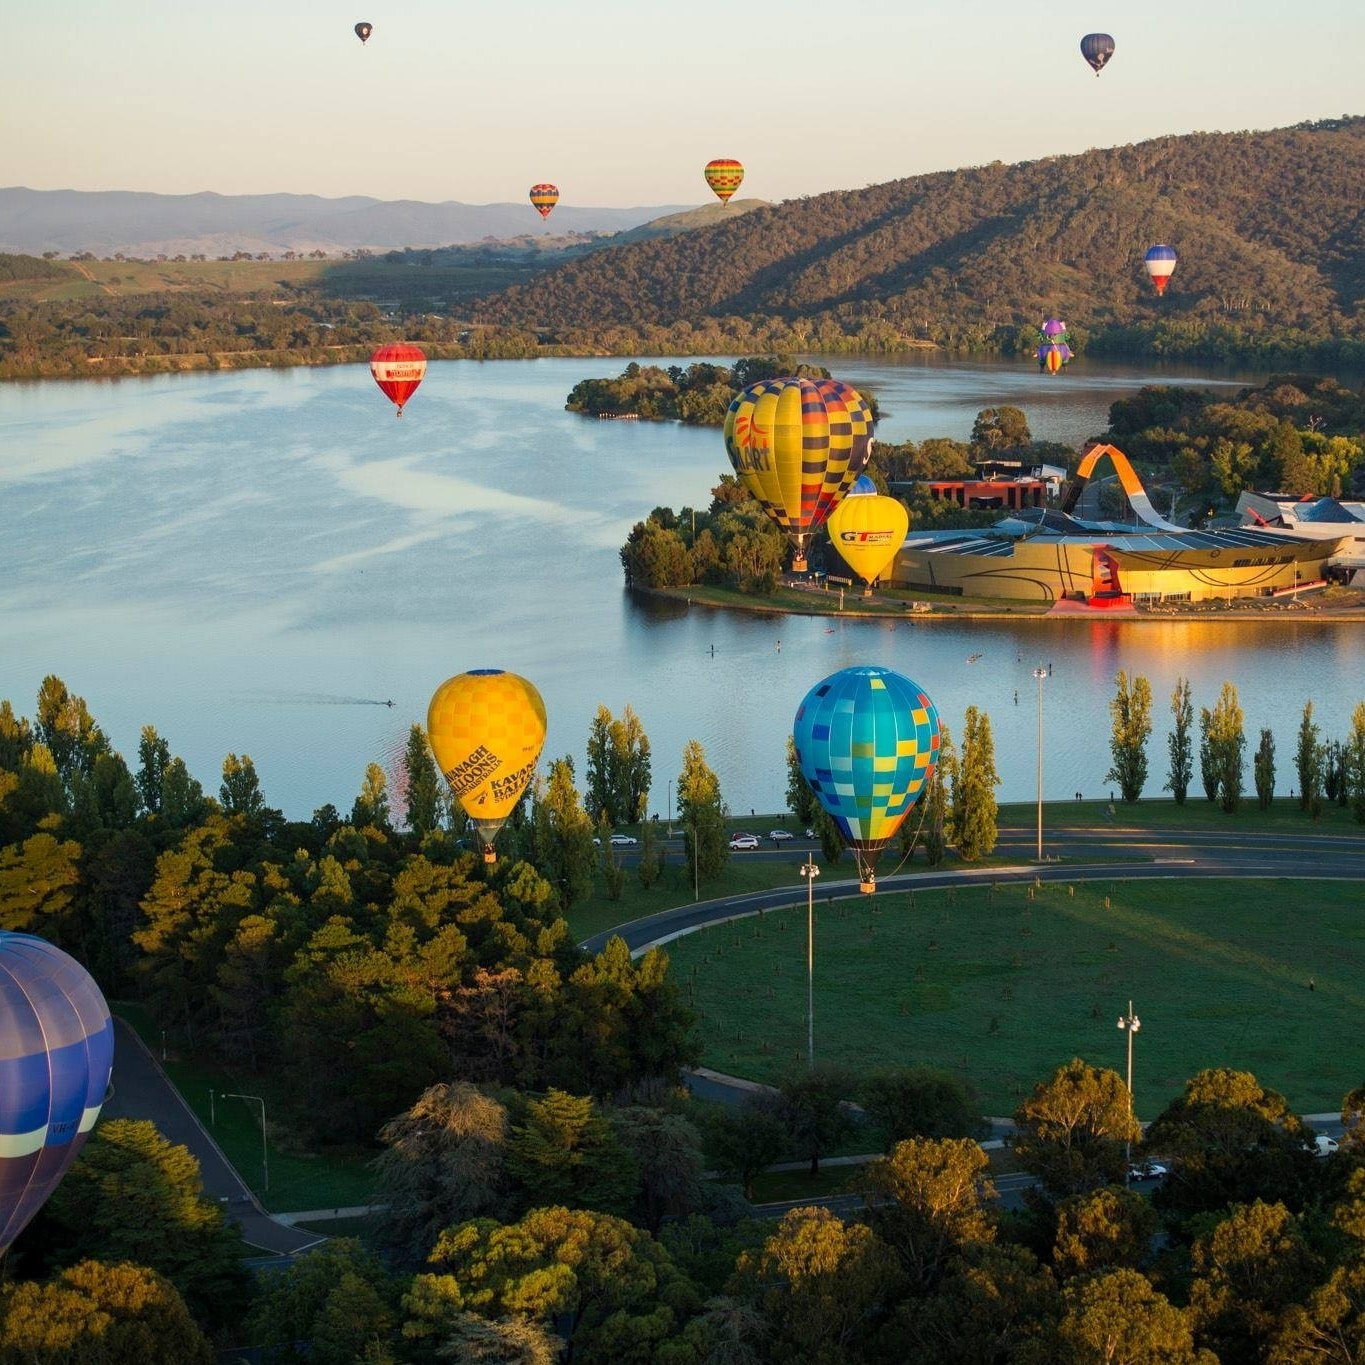 Hot air balloons floating above Luke Burley Griffin © Martin Ollman